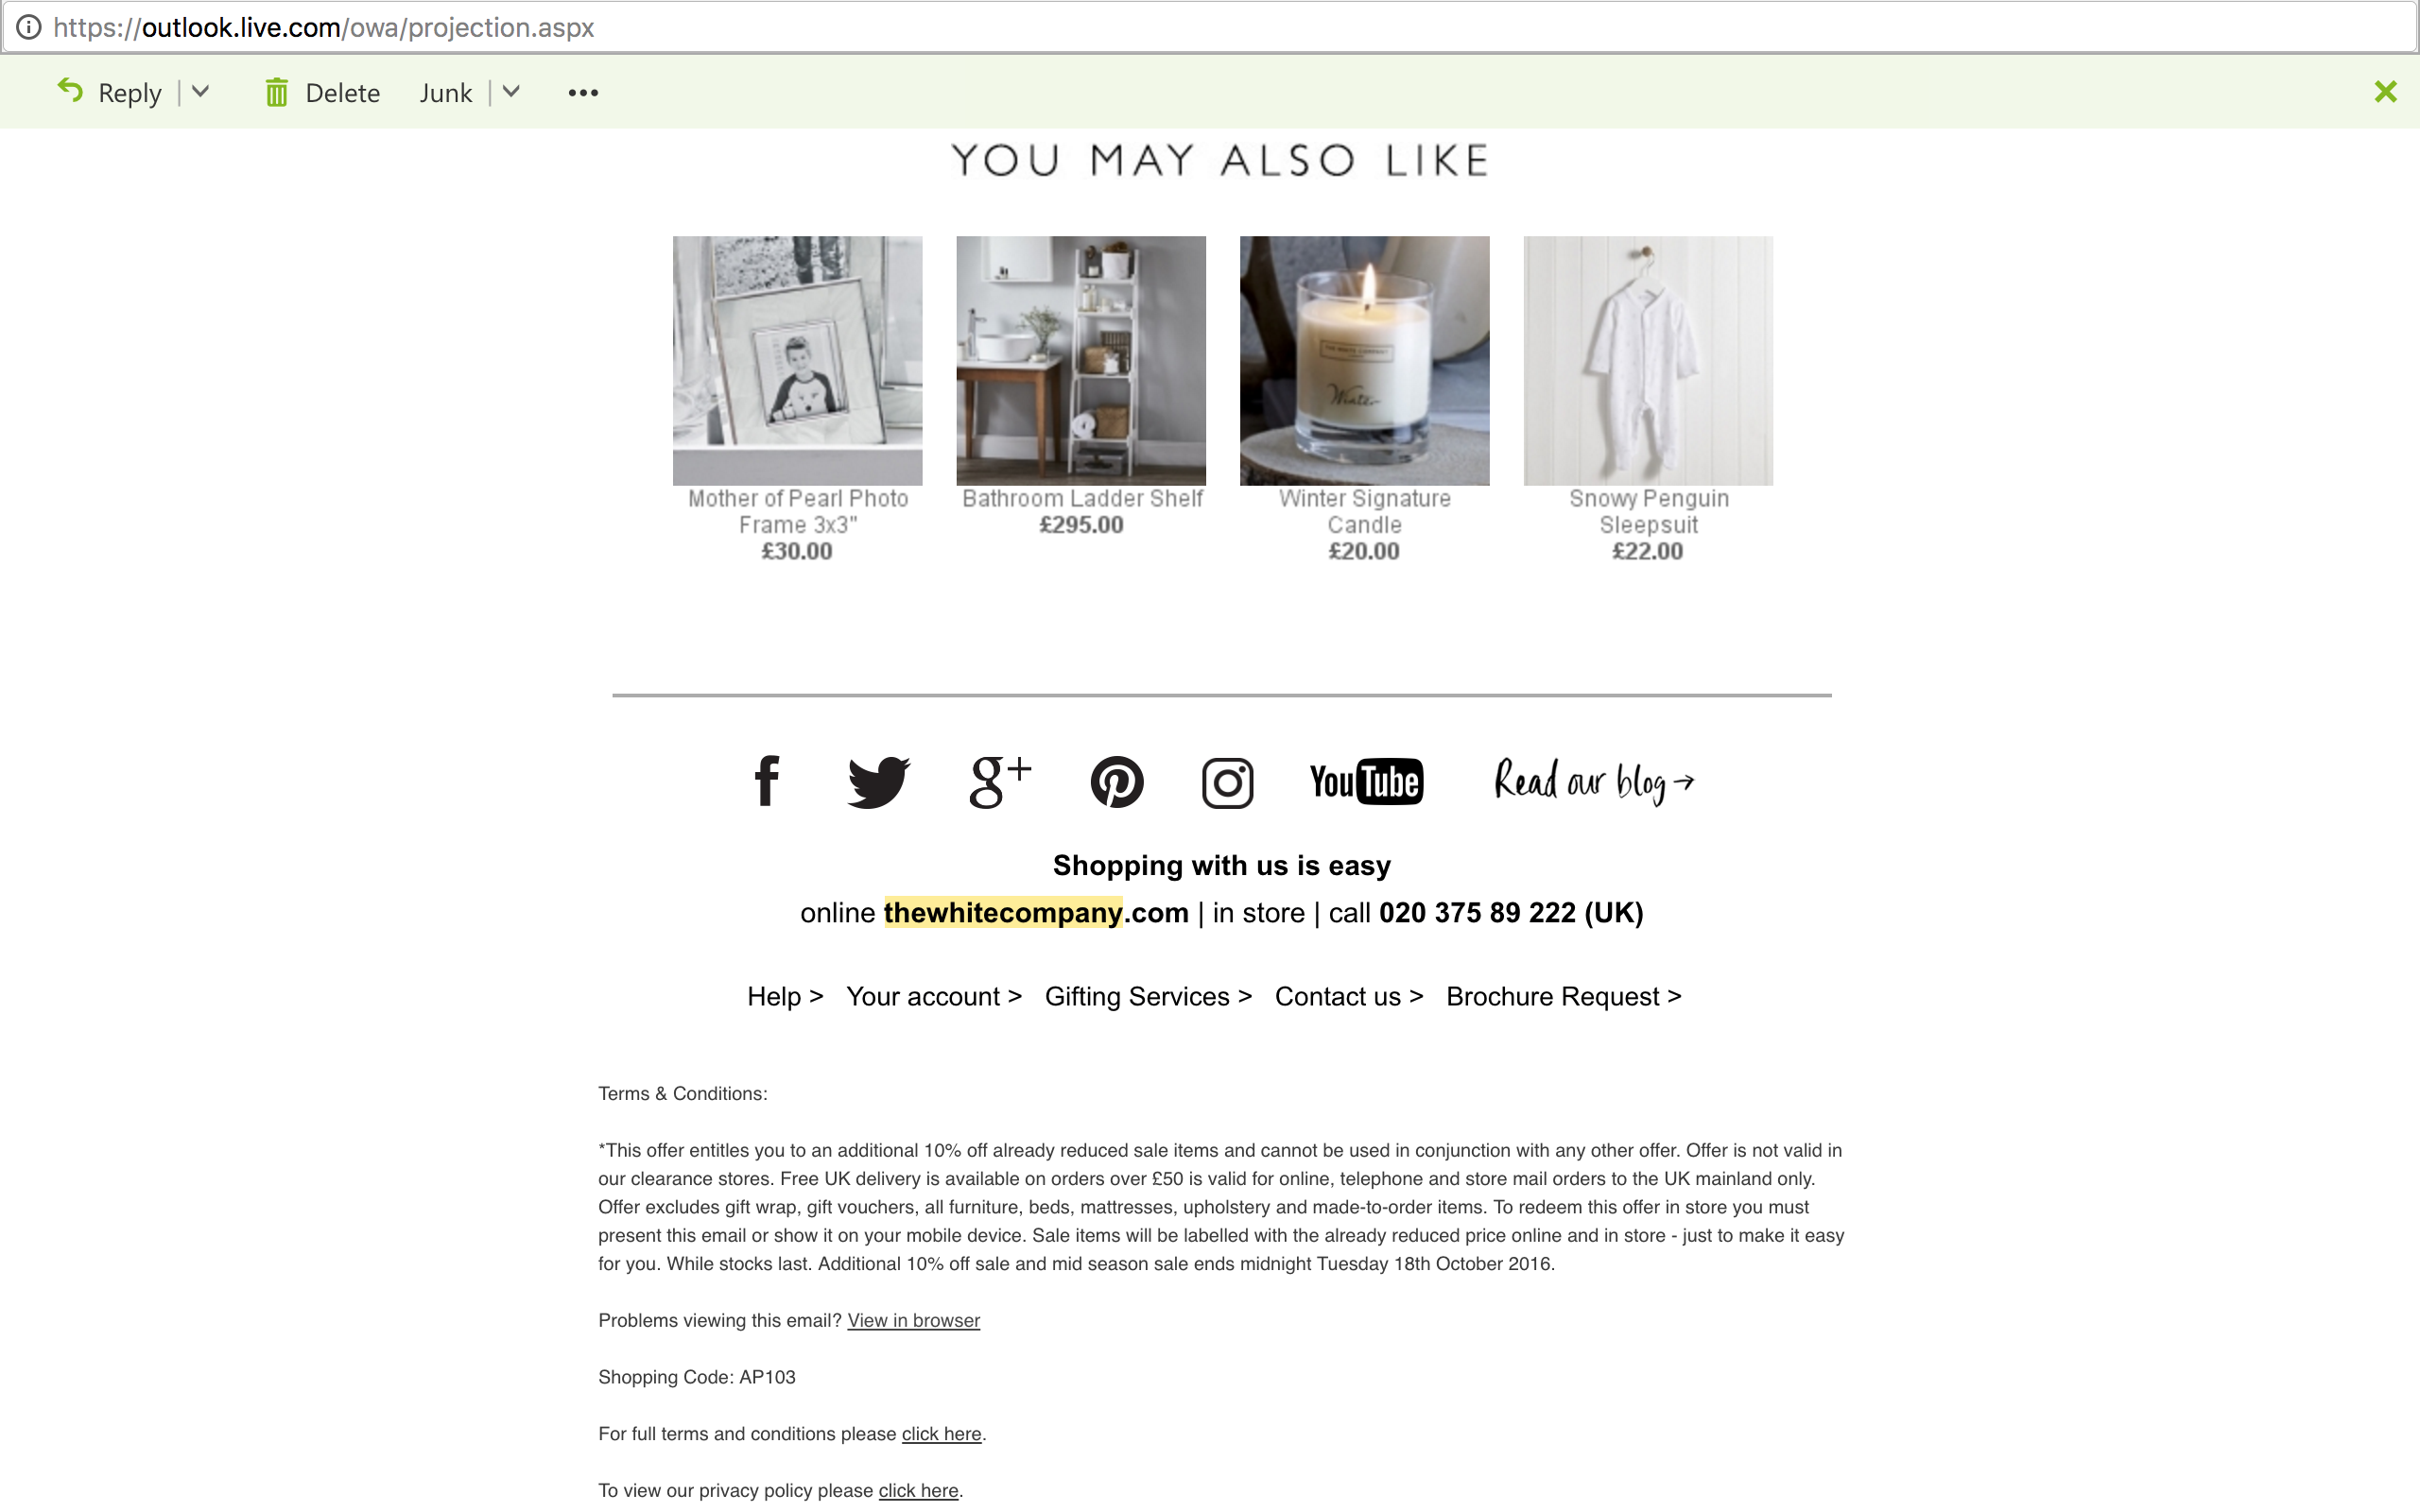 E-mail Marketing: The White Company - An E-Mail Analysis